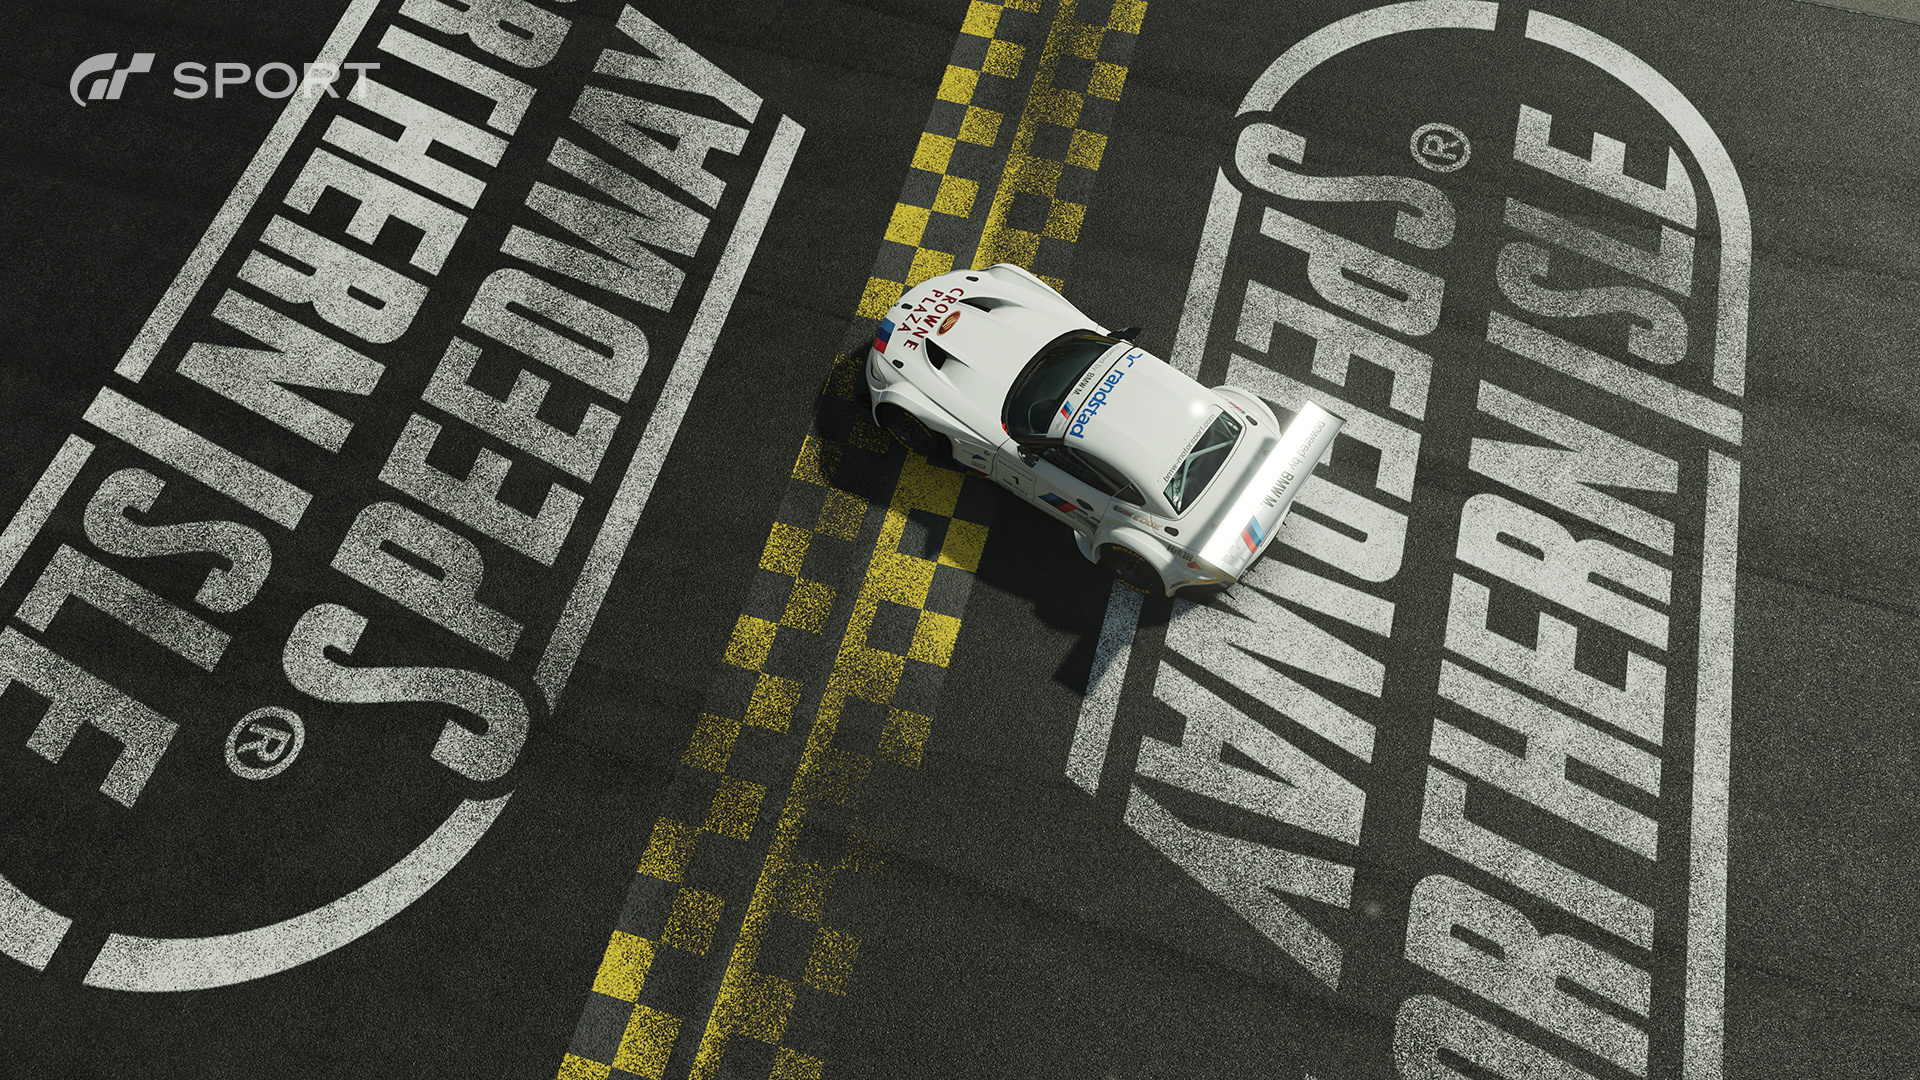 Gran Turismo Sport Iphone Wallpaper: Gran Turismo Sport Wallpapers, Pictures, Images